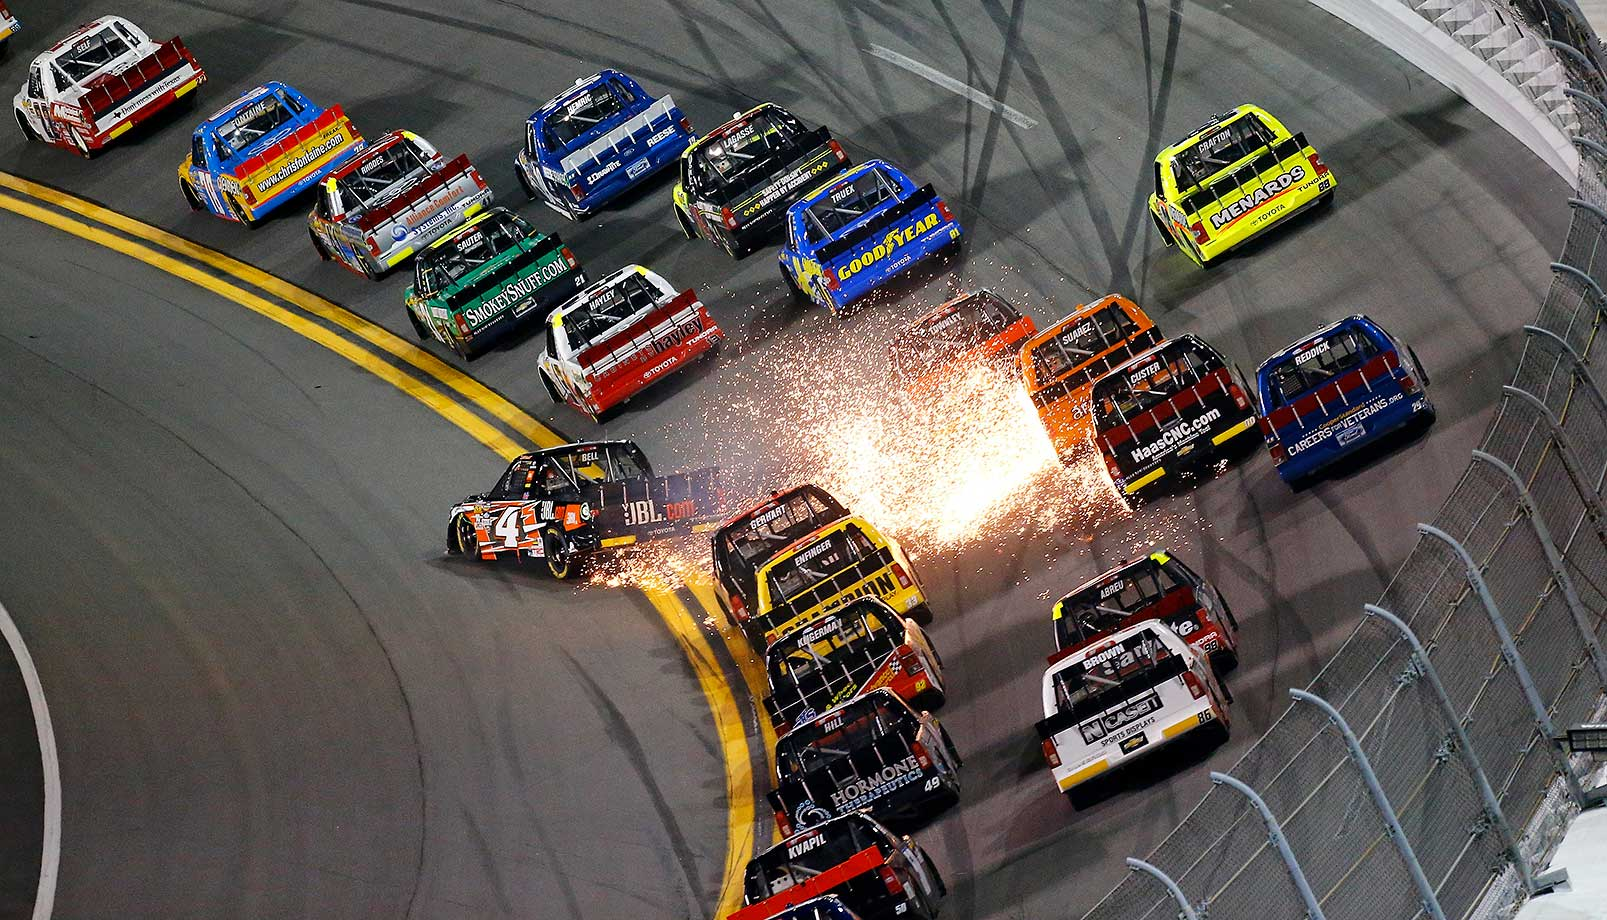 Christopher Bell has an on track incident during the NASCAR Camping World Truck Series race at Daytona International Speedway.